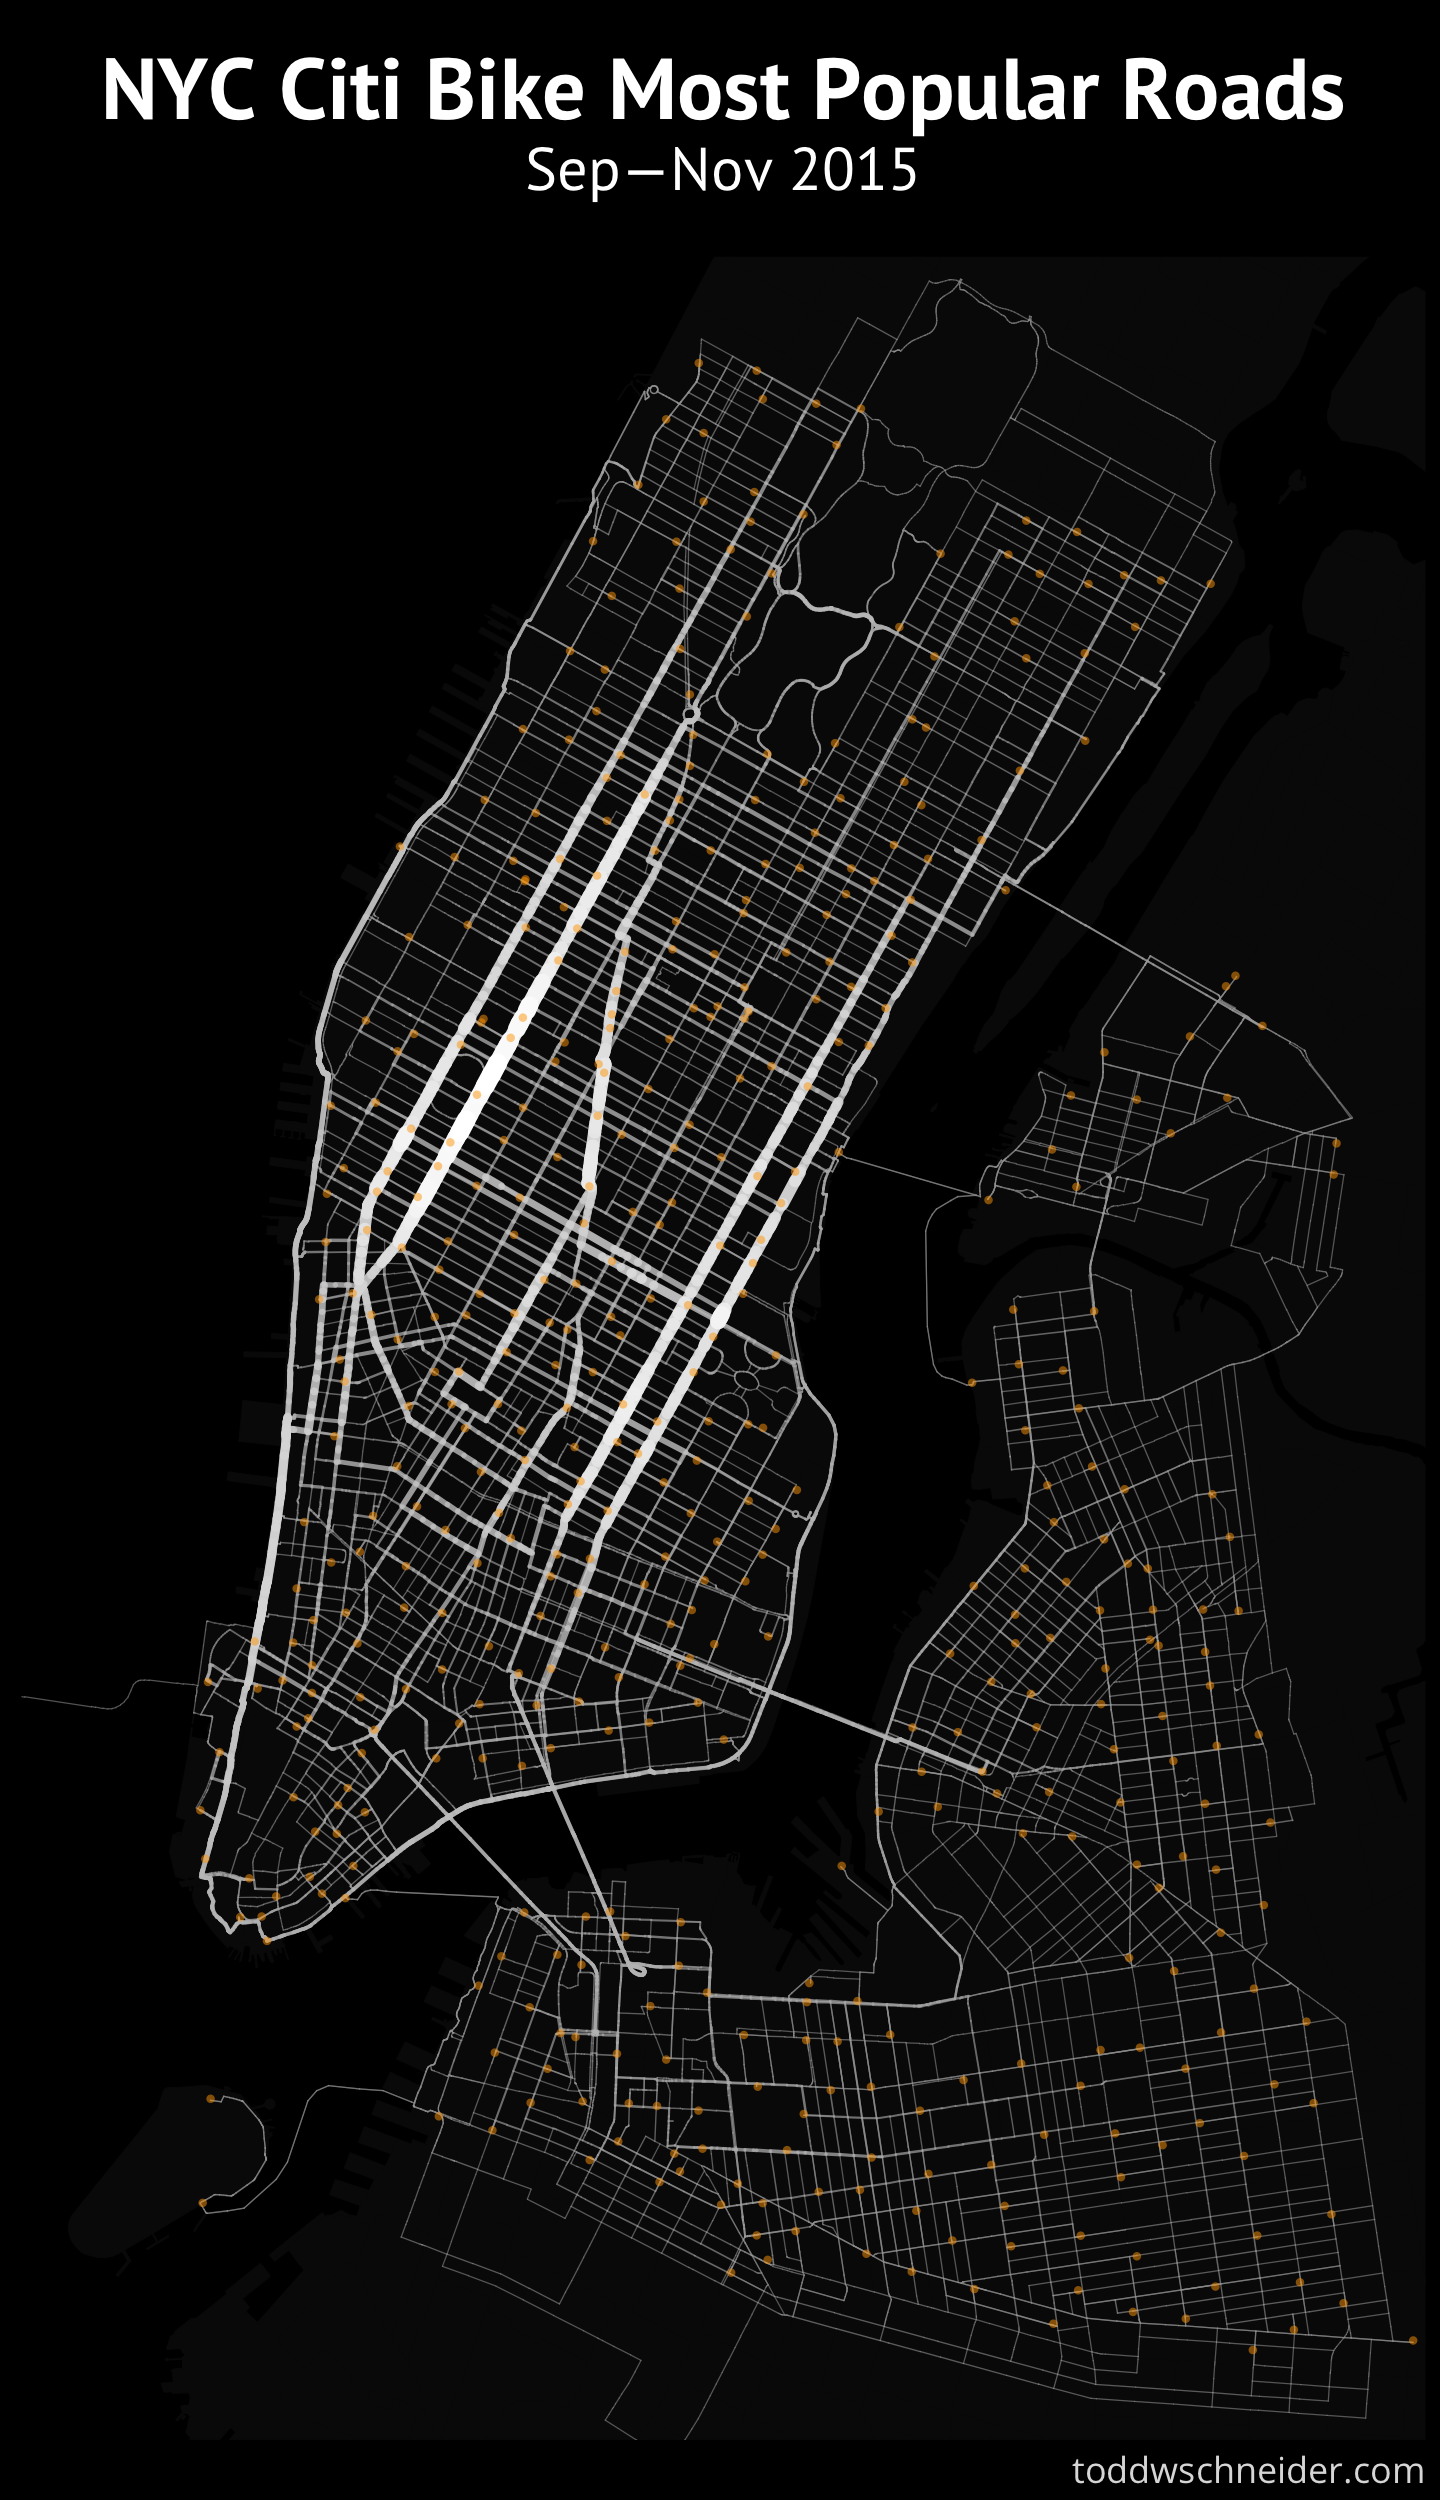 Citi Bike New York Map A Tale of Twenty Two Million Citi Bike Rides: Analyzing the NYC